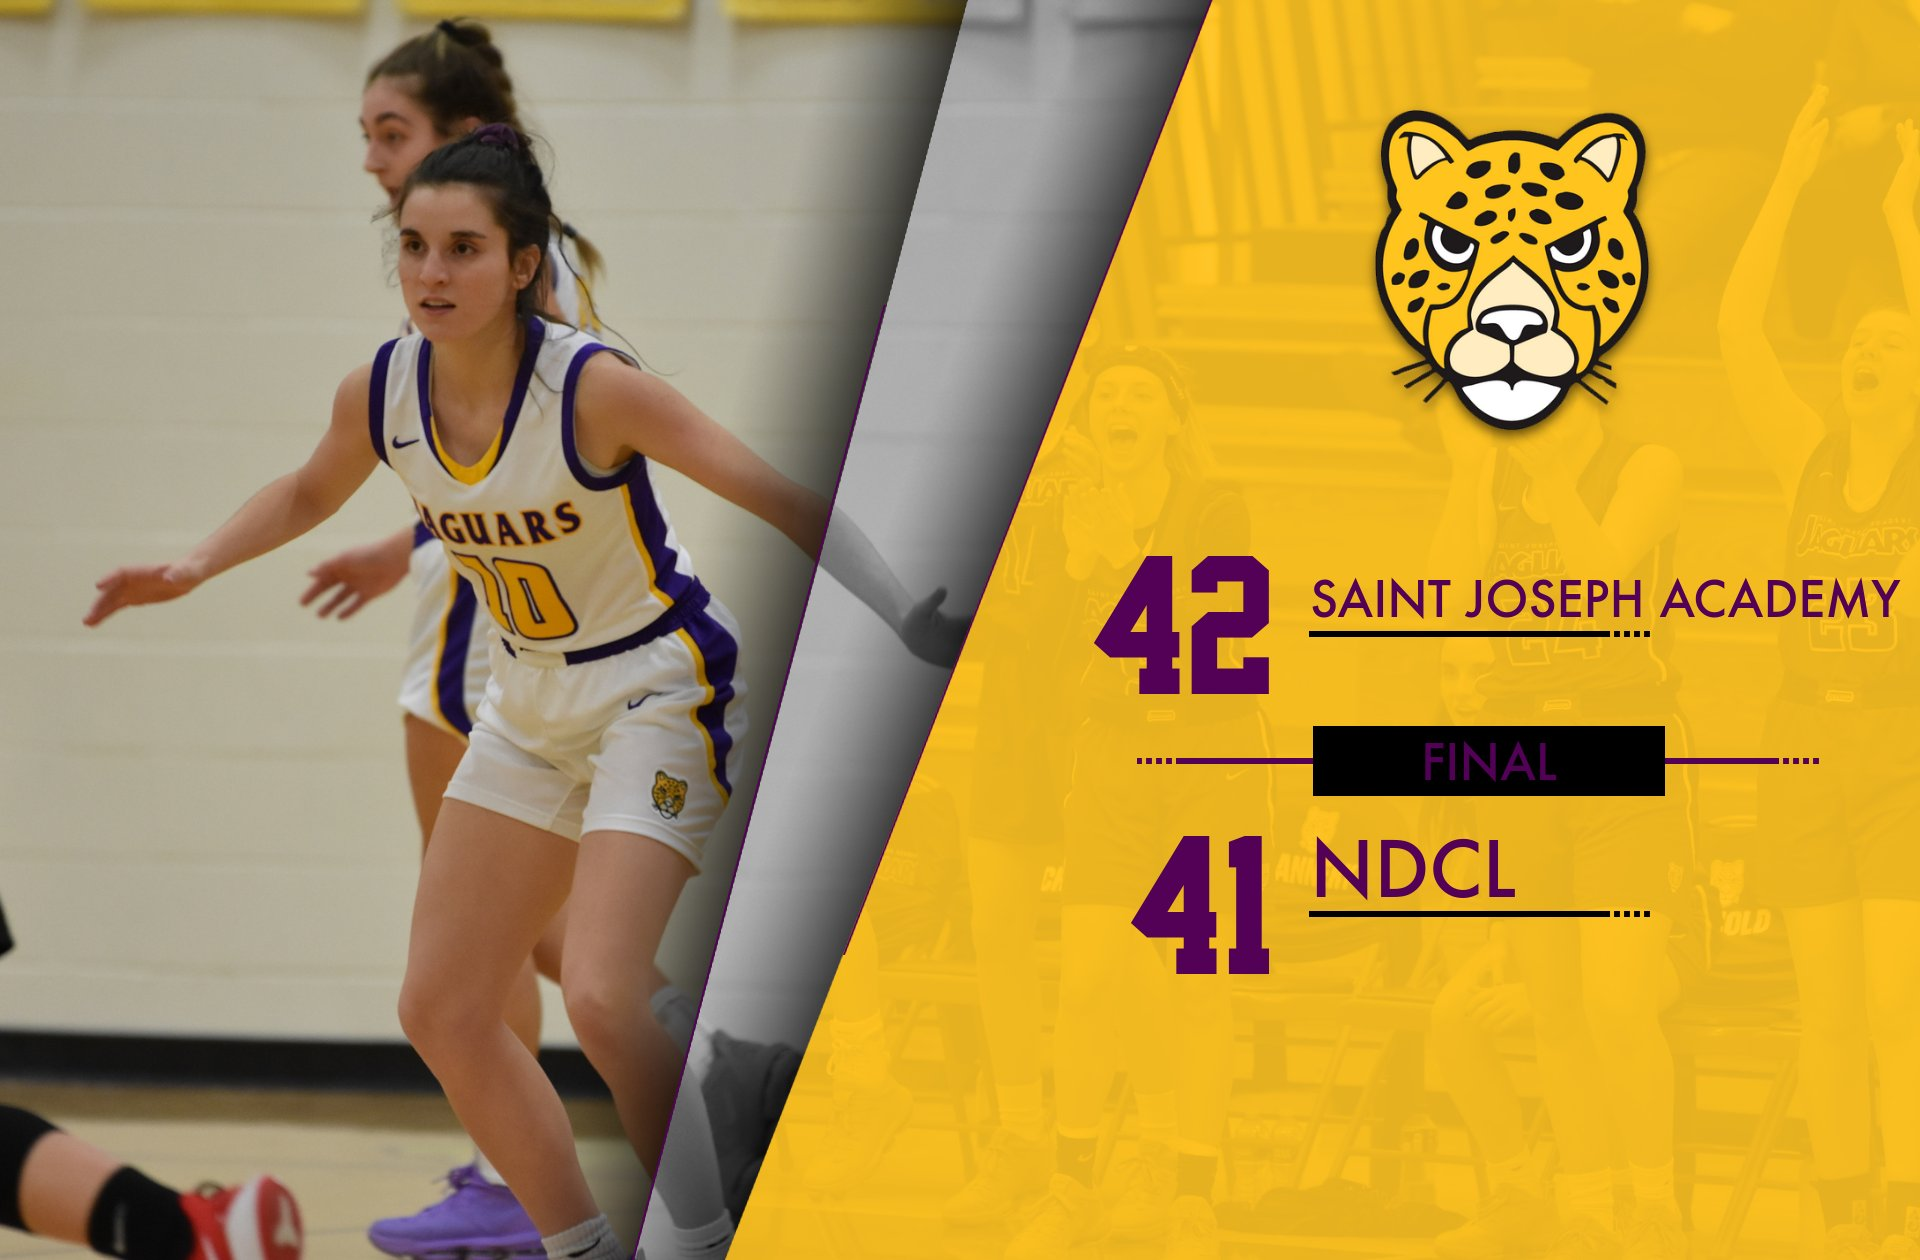 Jaguars Move To 4-1 in NCL Play With Road Win at NDCL